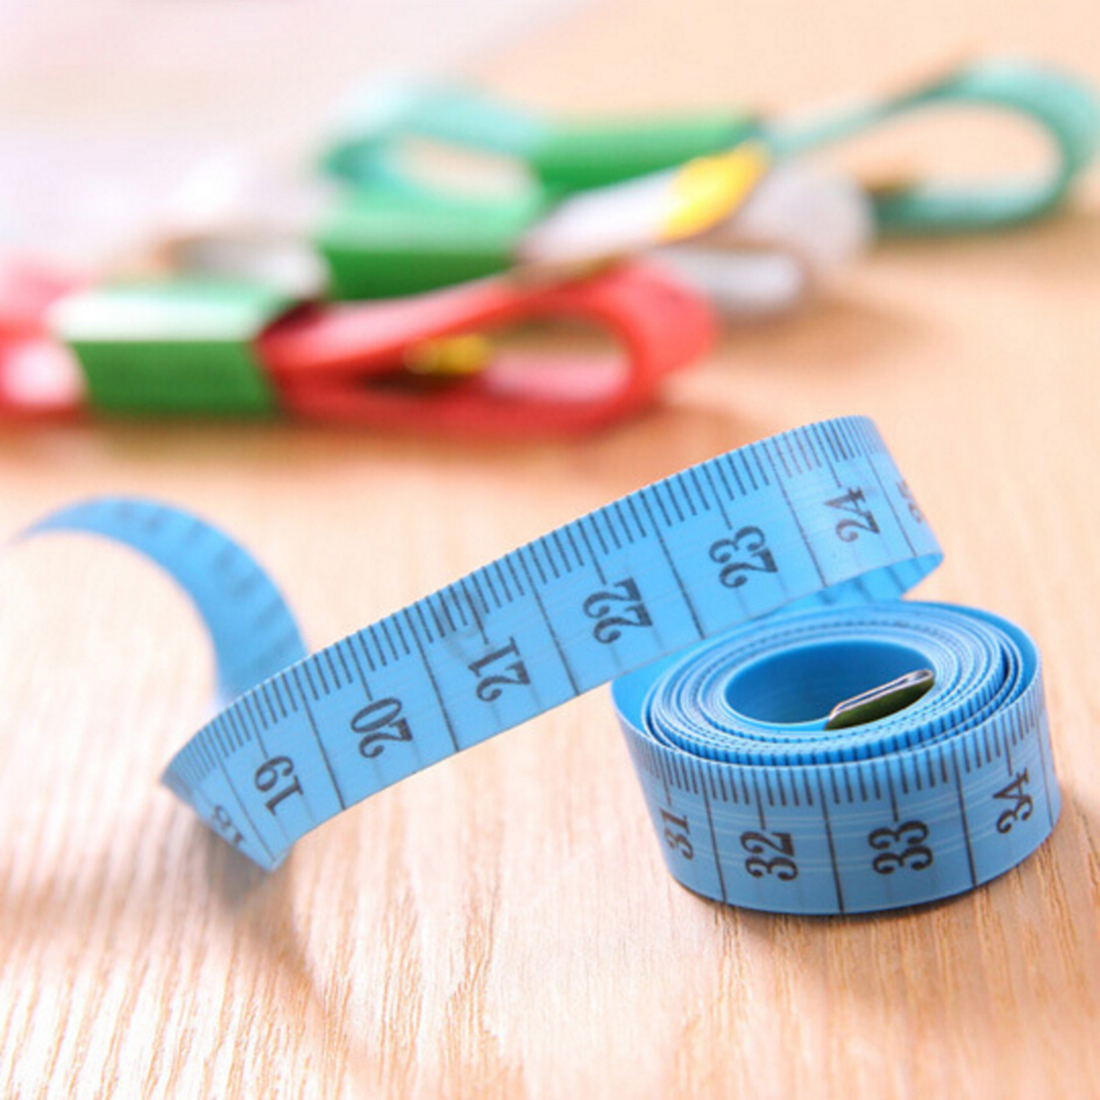 цены Hot Body Measuring Ruler Sewing Tailor Tape Measure Soft 1.5M Sewing Ruler Meter Sewing Measuring Tape Random Color